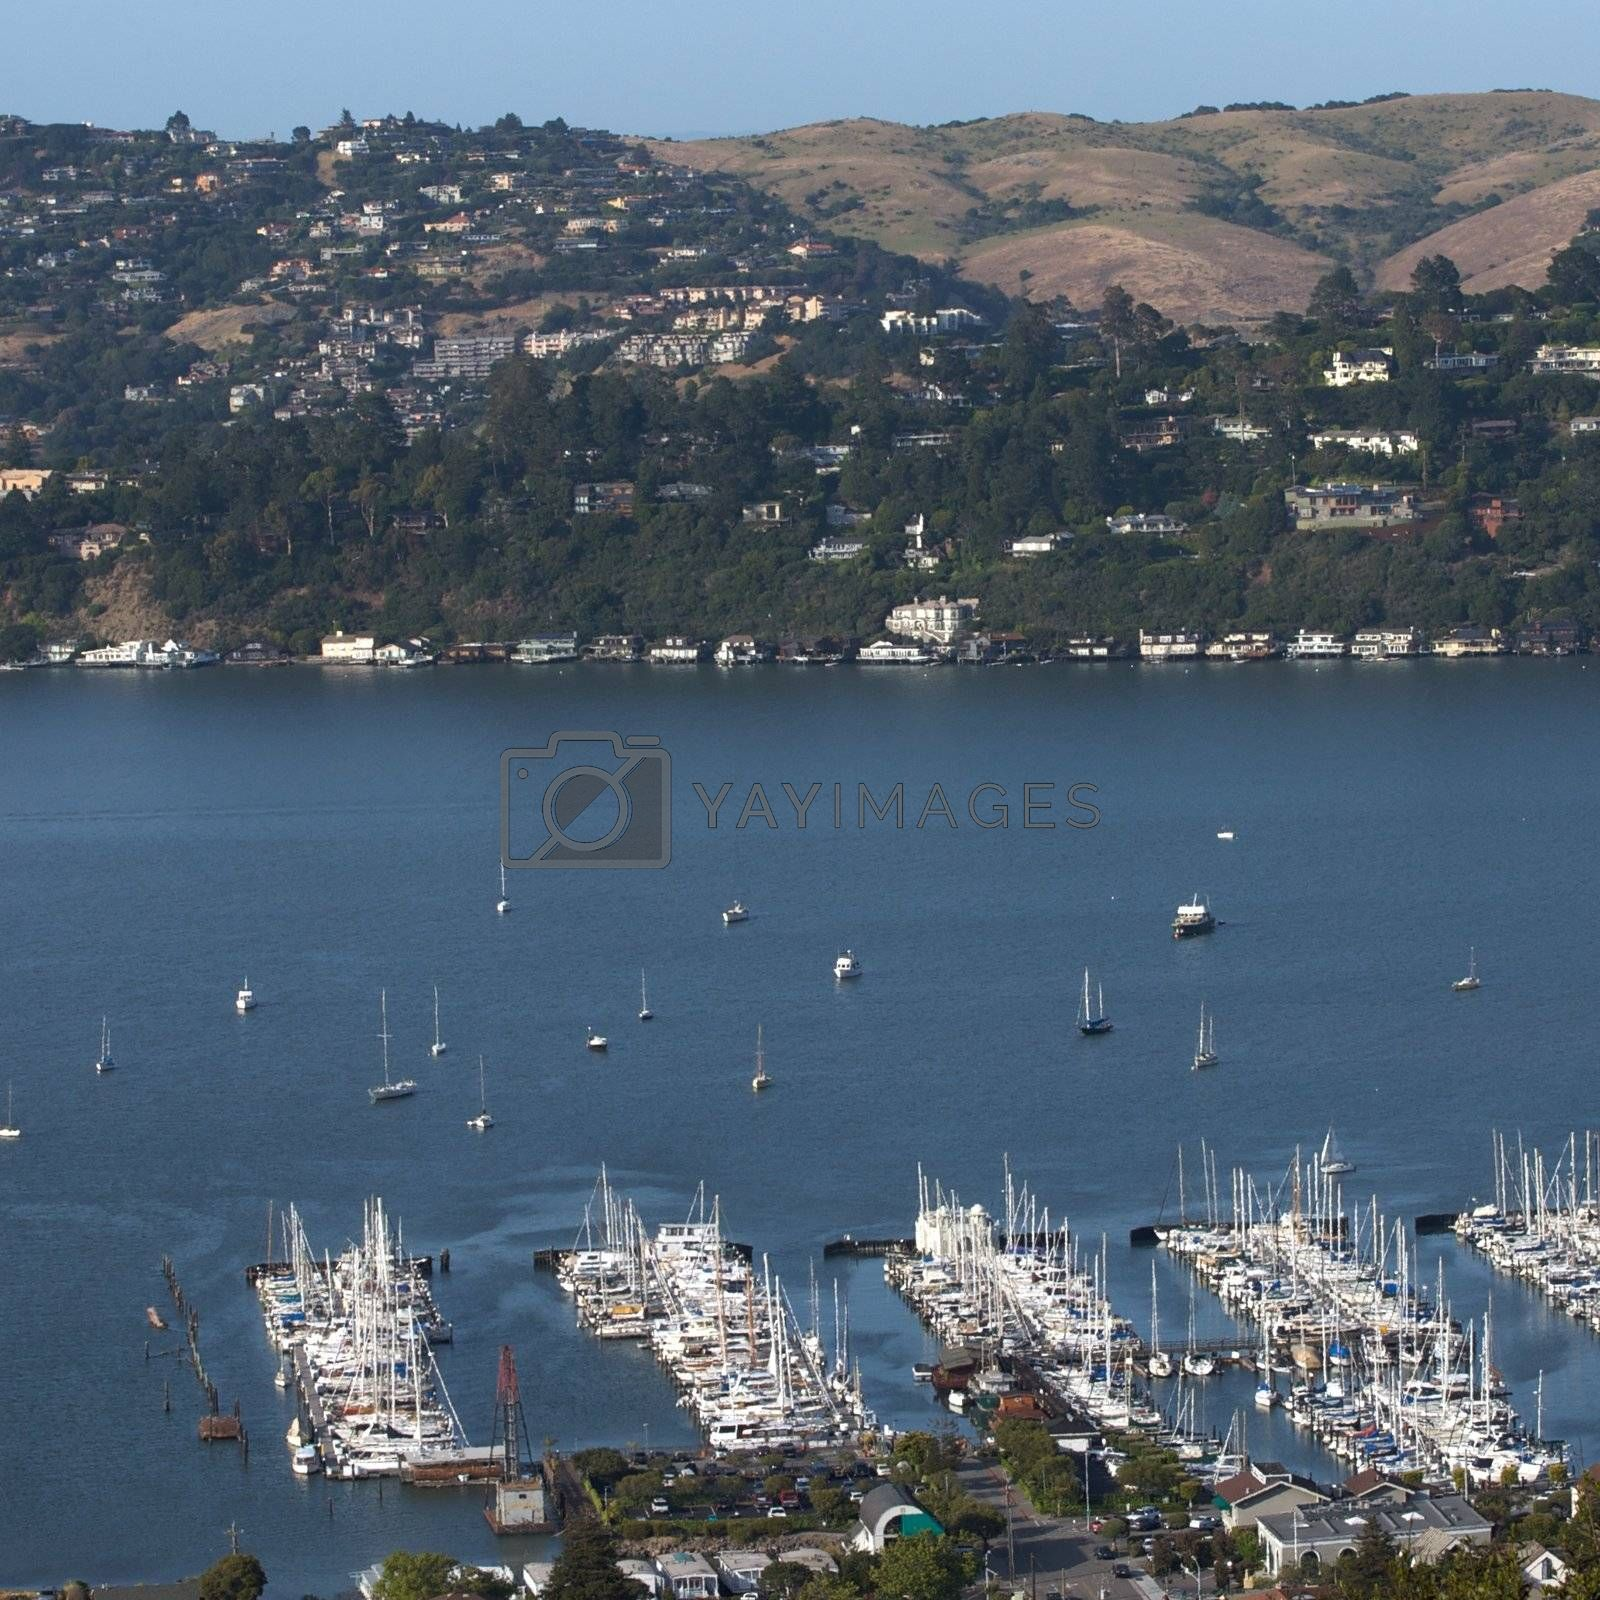 Sausalito, a town on San Francisco Bay in Marin County, USA by jedphoto